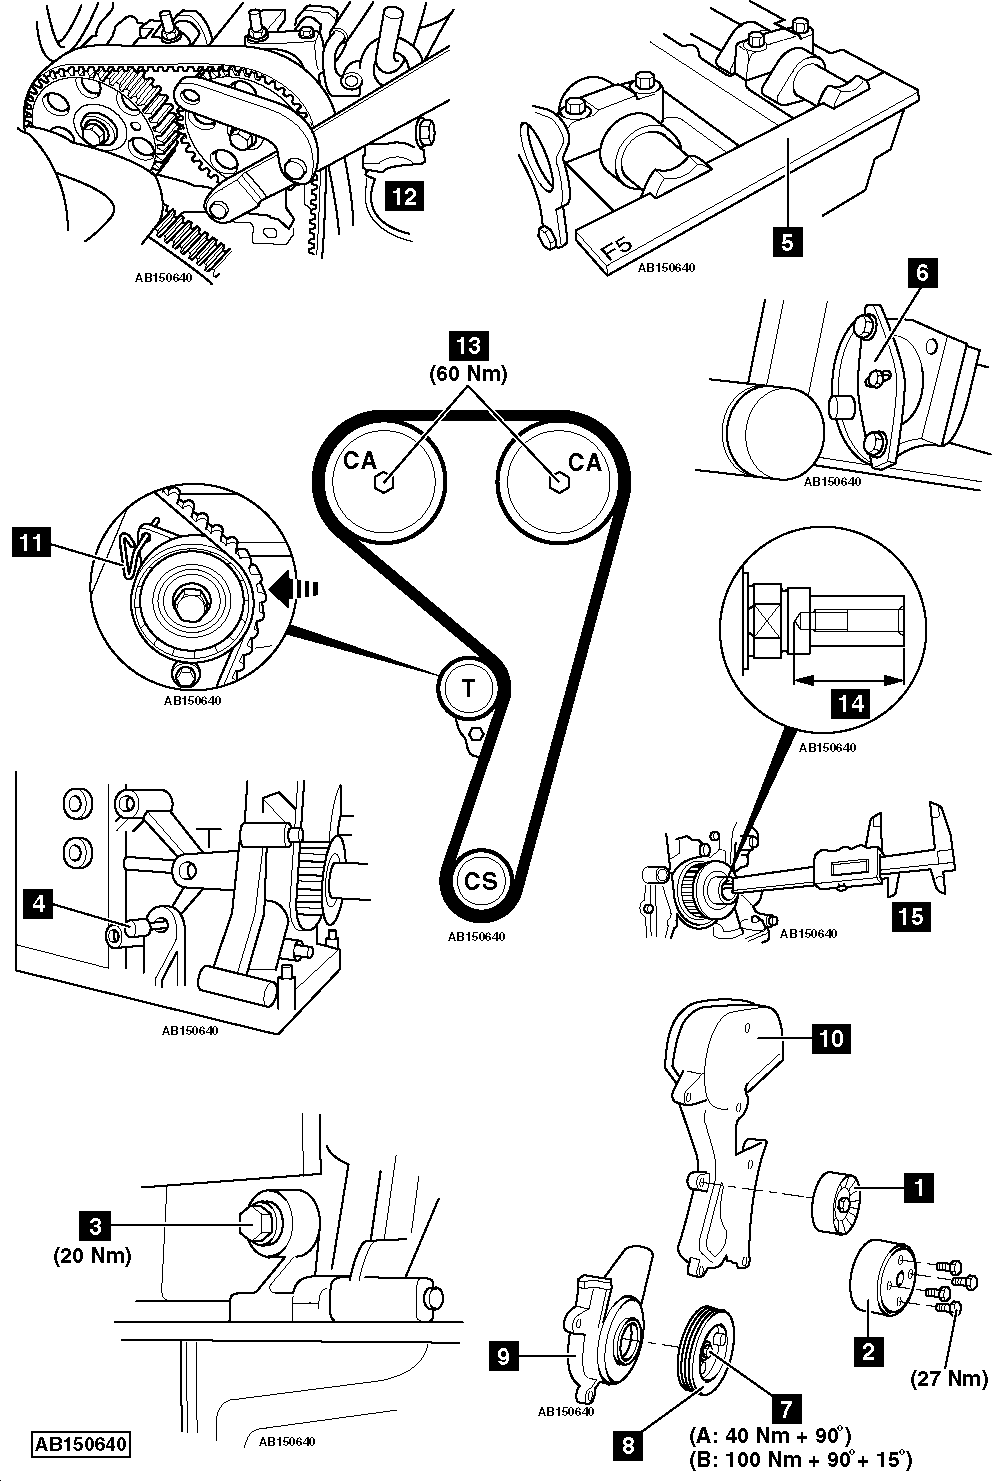 Nissan Maxima Gle Automatic Transmissiontransaxle Wiring Diagram together with 2631512578 additionally Saturn Vue 2005 2007 Fuse Box Diagram additionally 2ufvd Murano Wiring Steering Wheel Radio Controls Thanks moreover 68pik Nissan Datsun Sentra Se R Spec V Need Wiring Diagram. on 2008 nissan altima radio wiring diagram